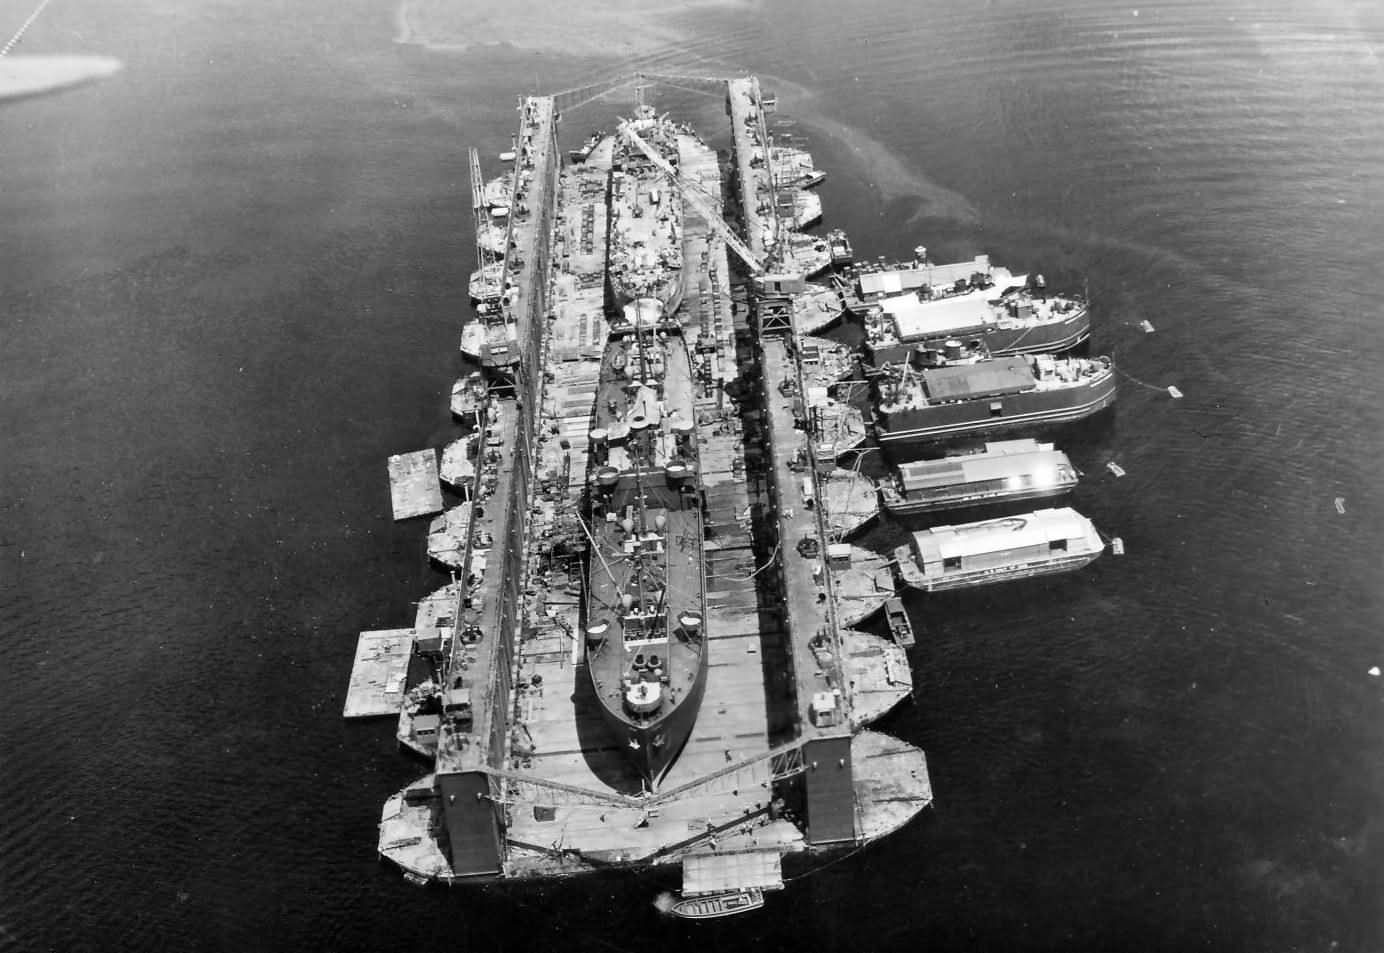 US Navy Large Floating Dry Dock, Navy Auxiliary ship